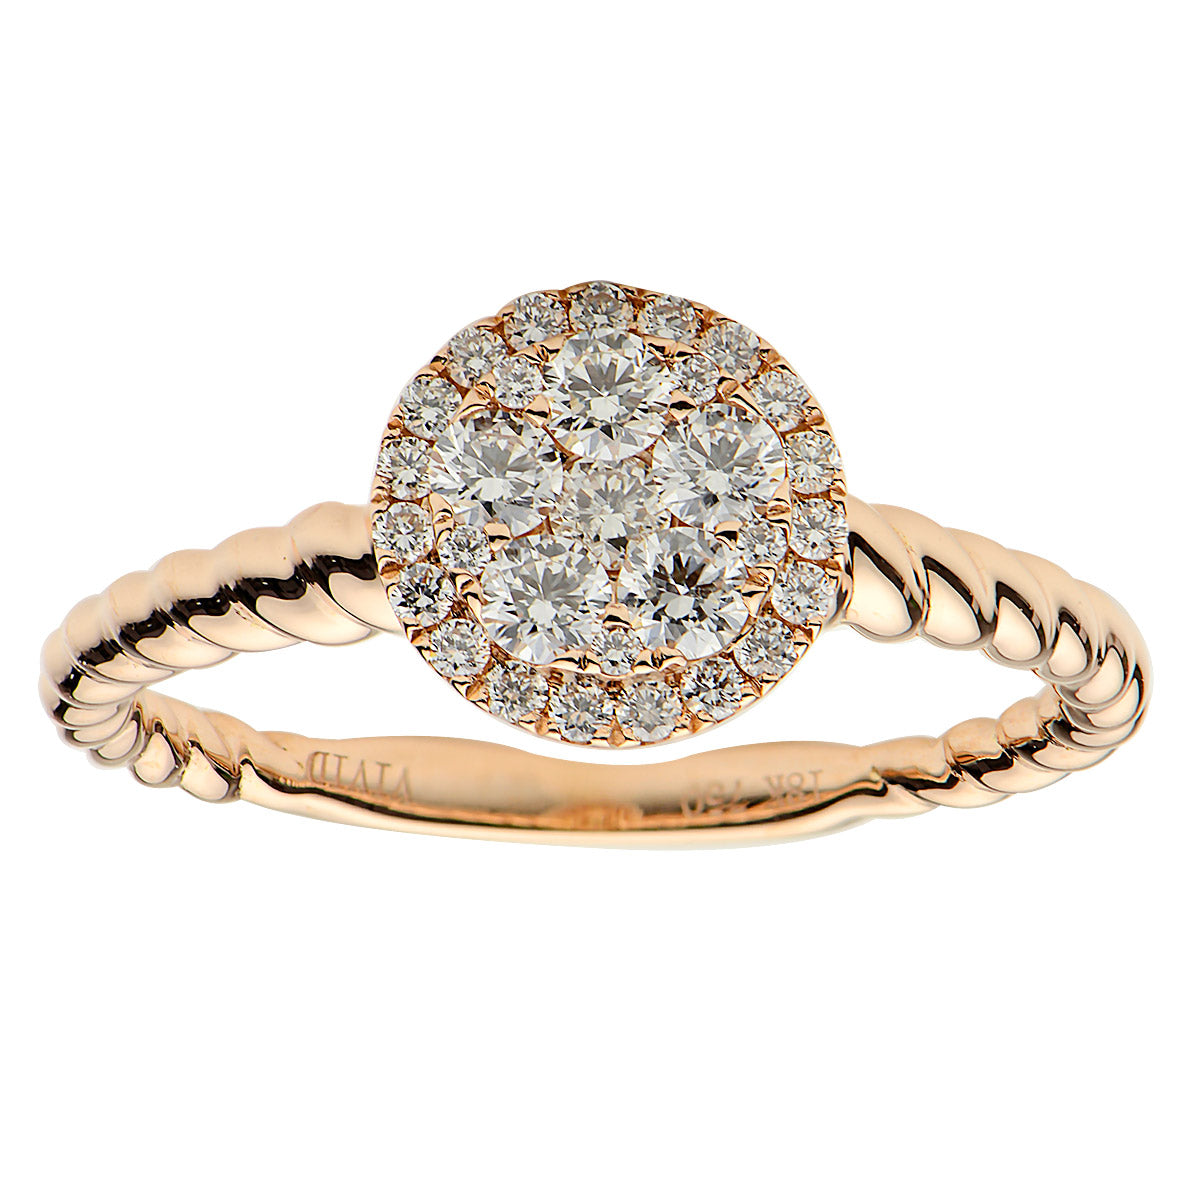 18k Rose Gold and Diamond Cluster Ring